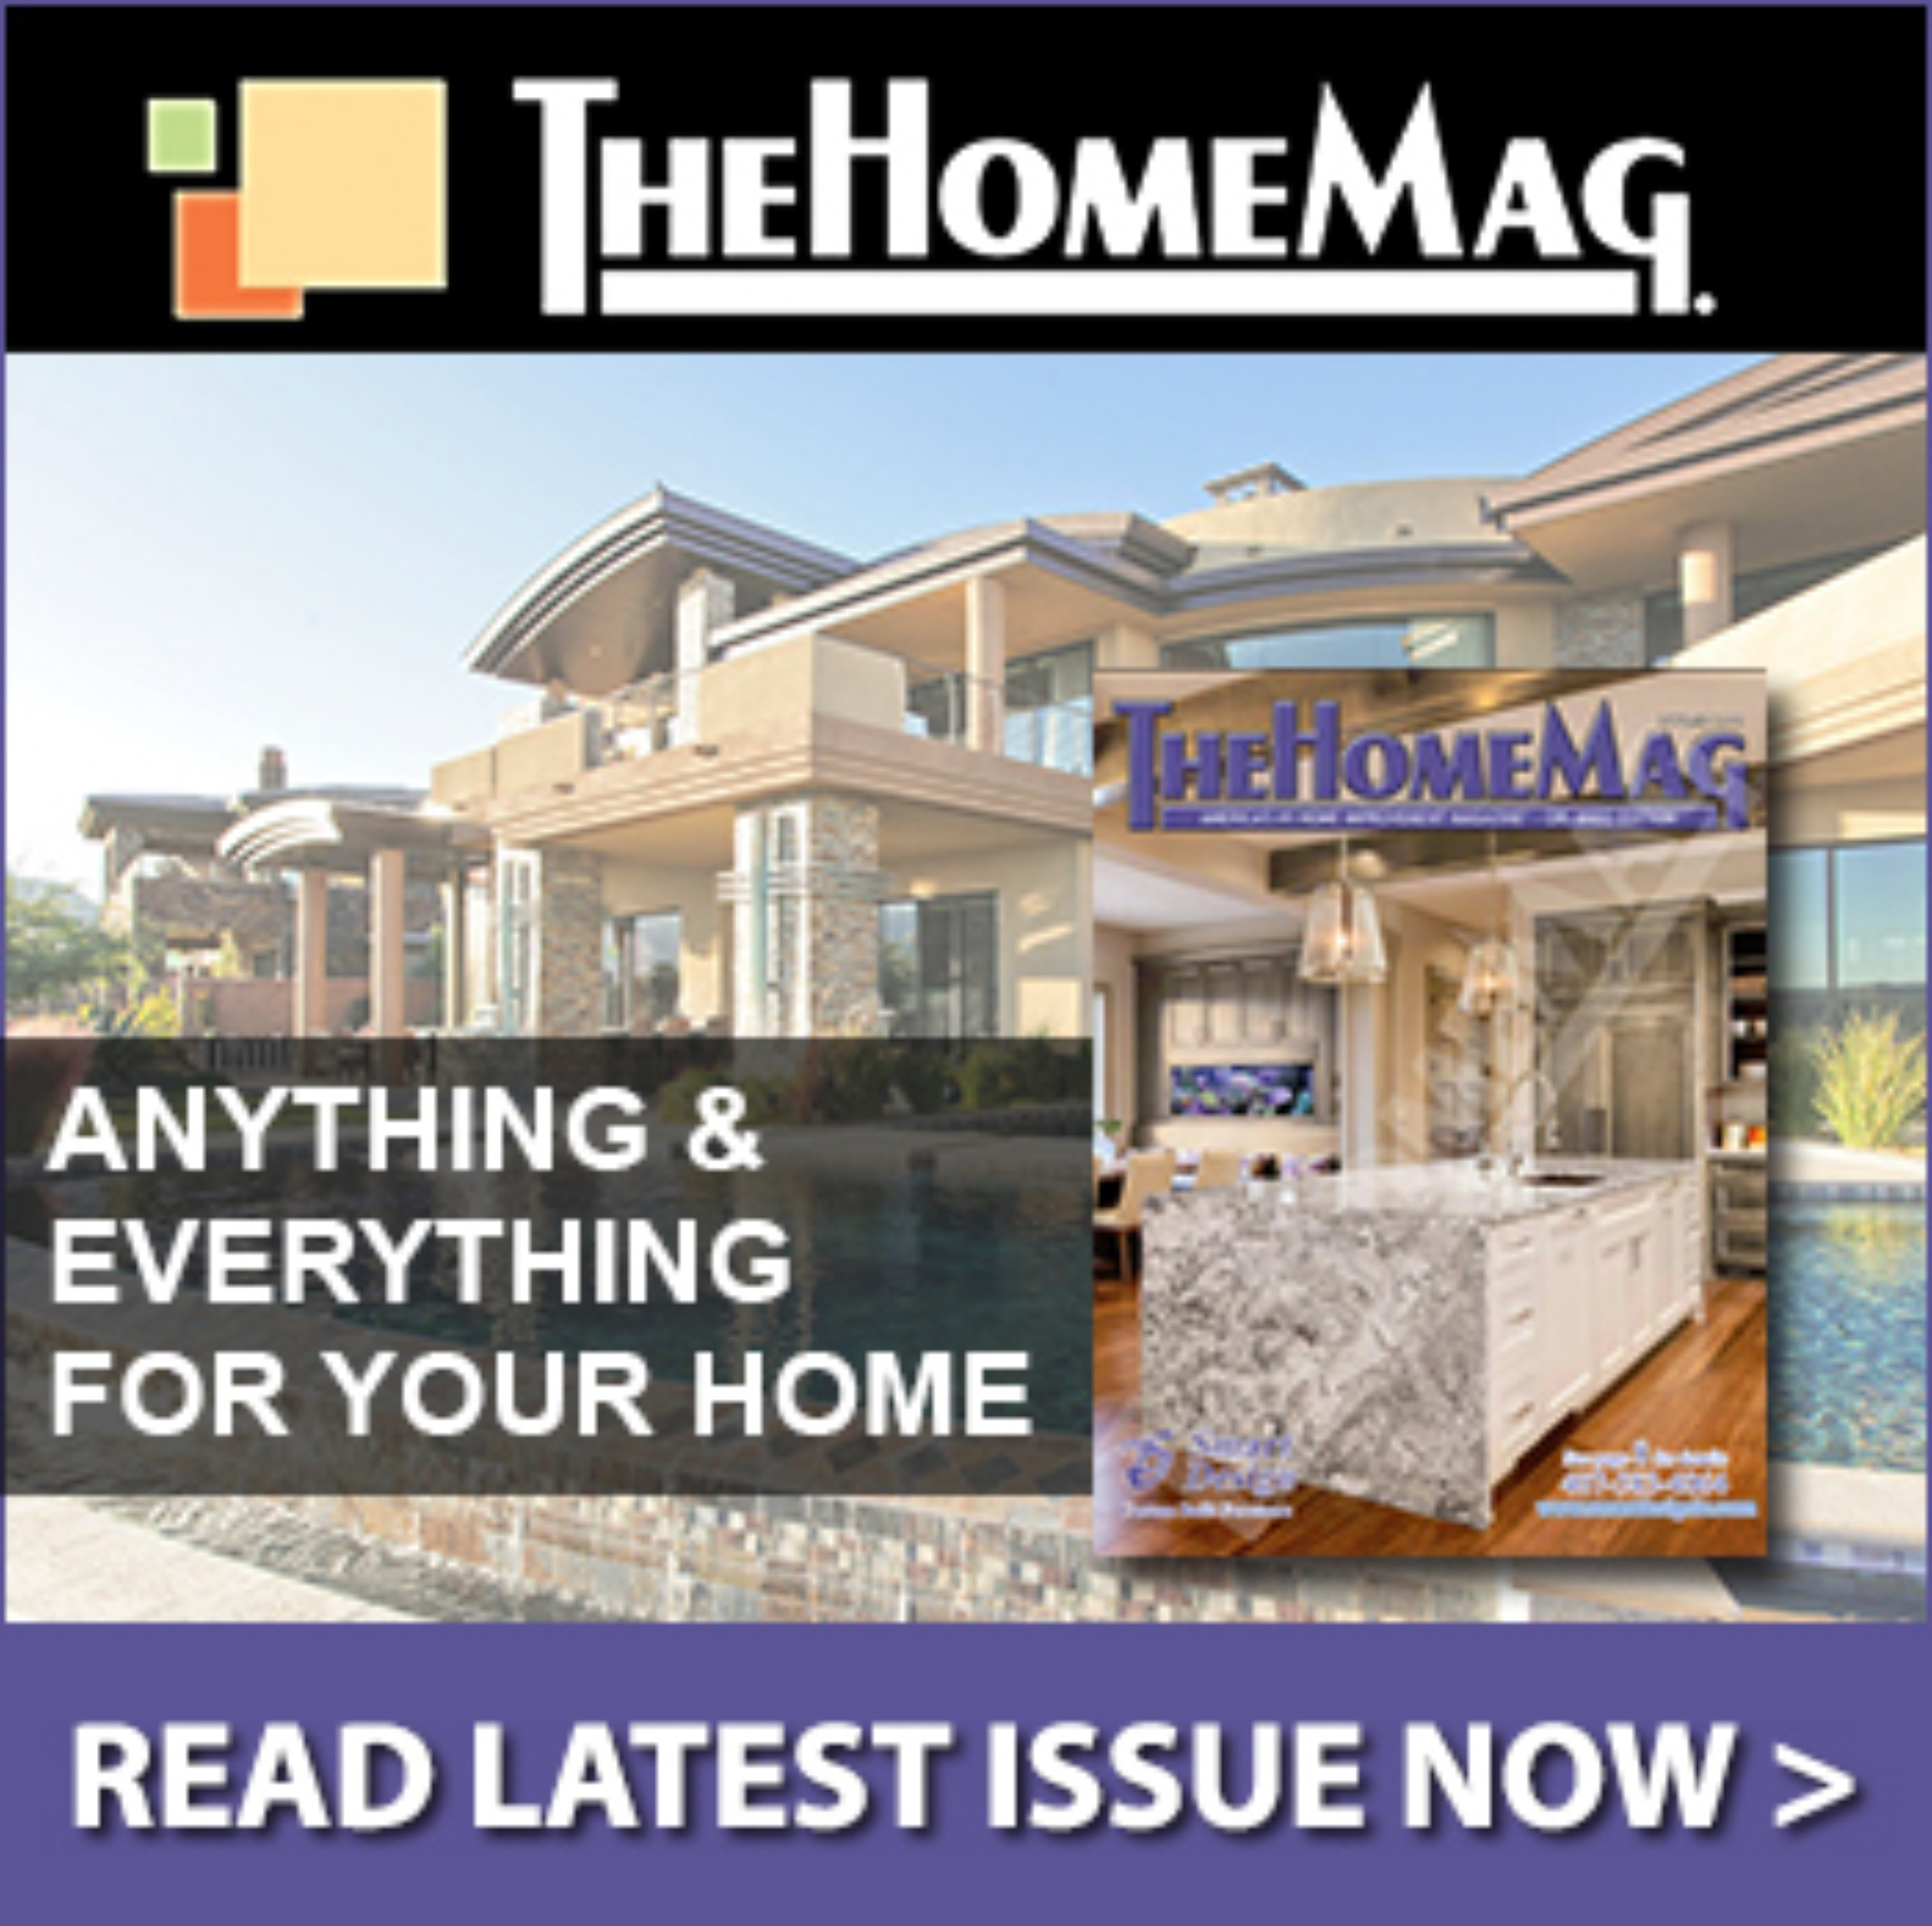 TheHomeMag America's #1 Home Improvement Magazine